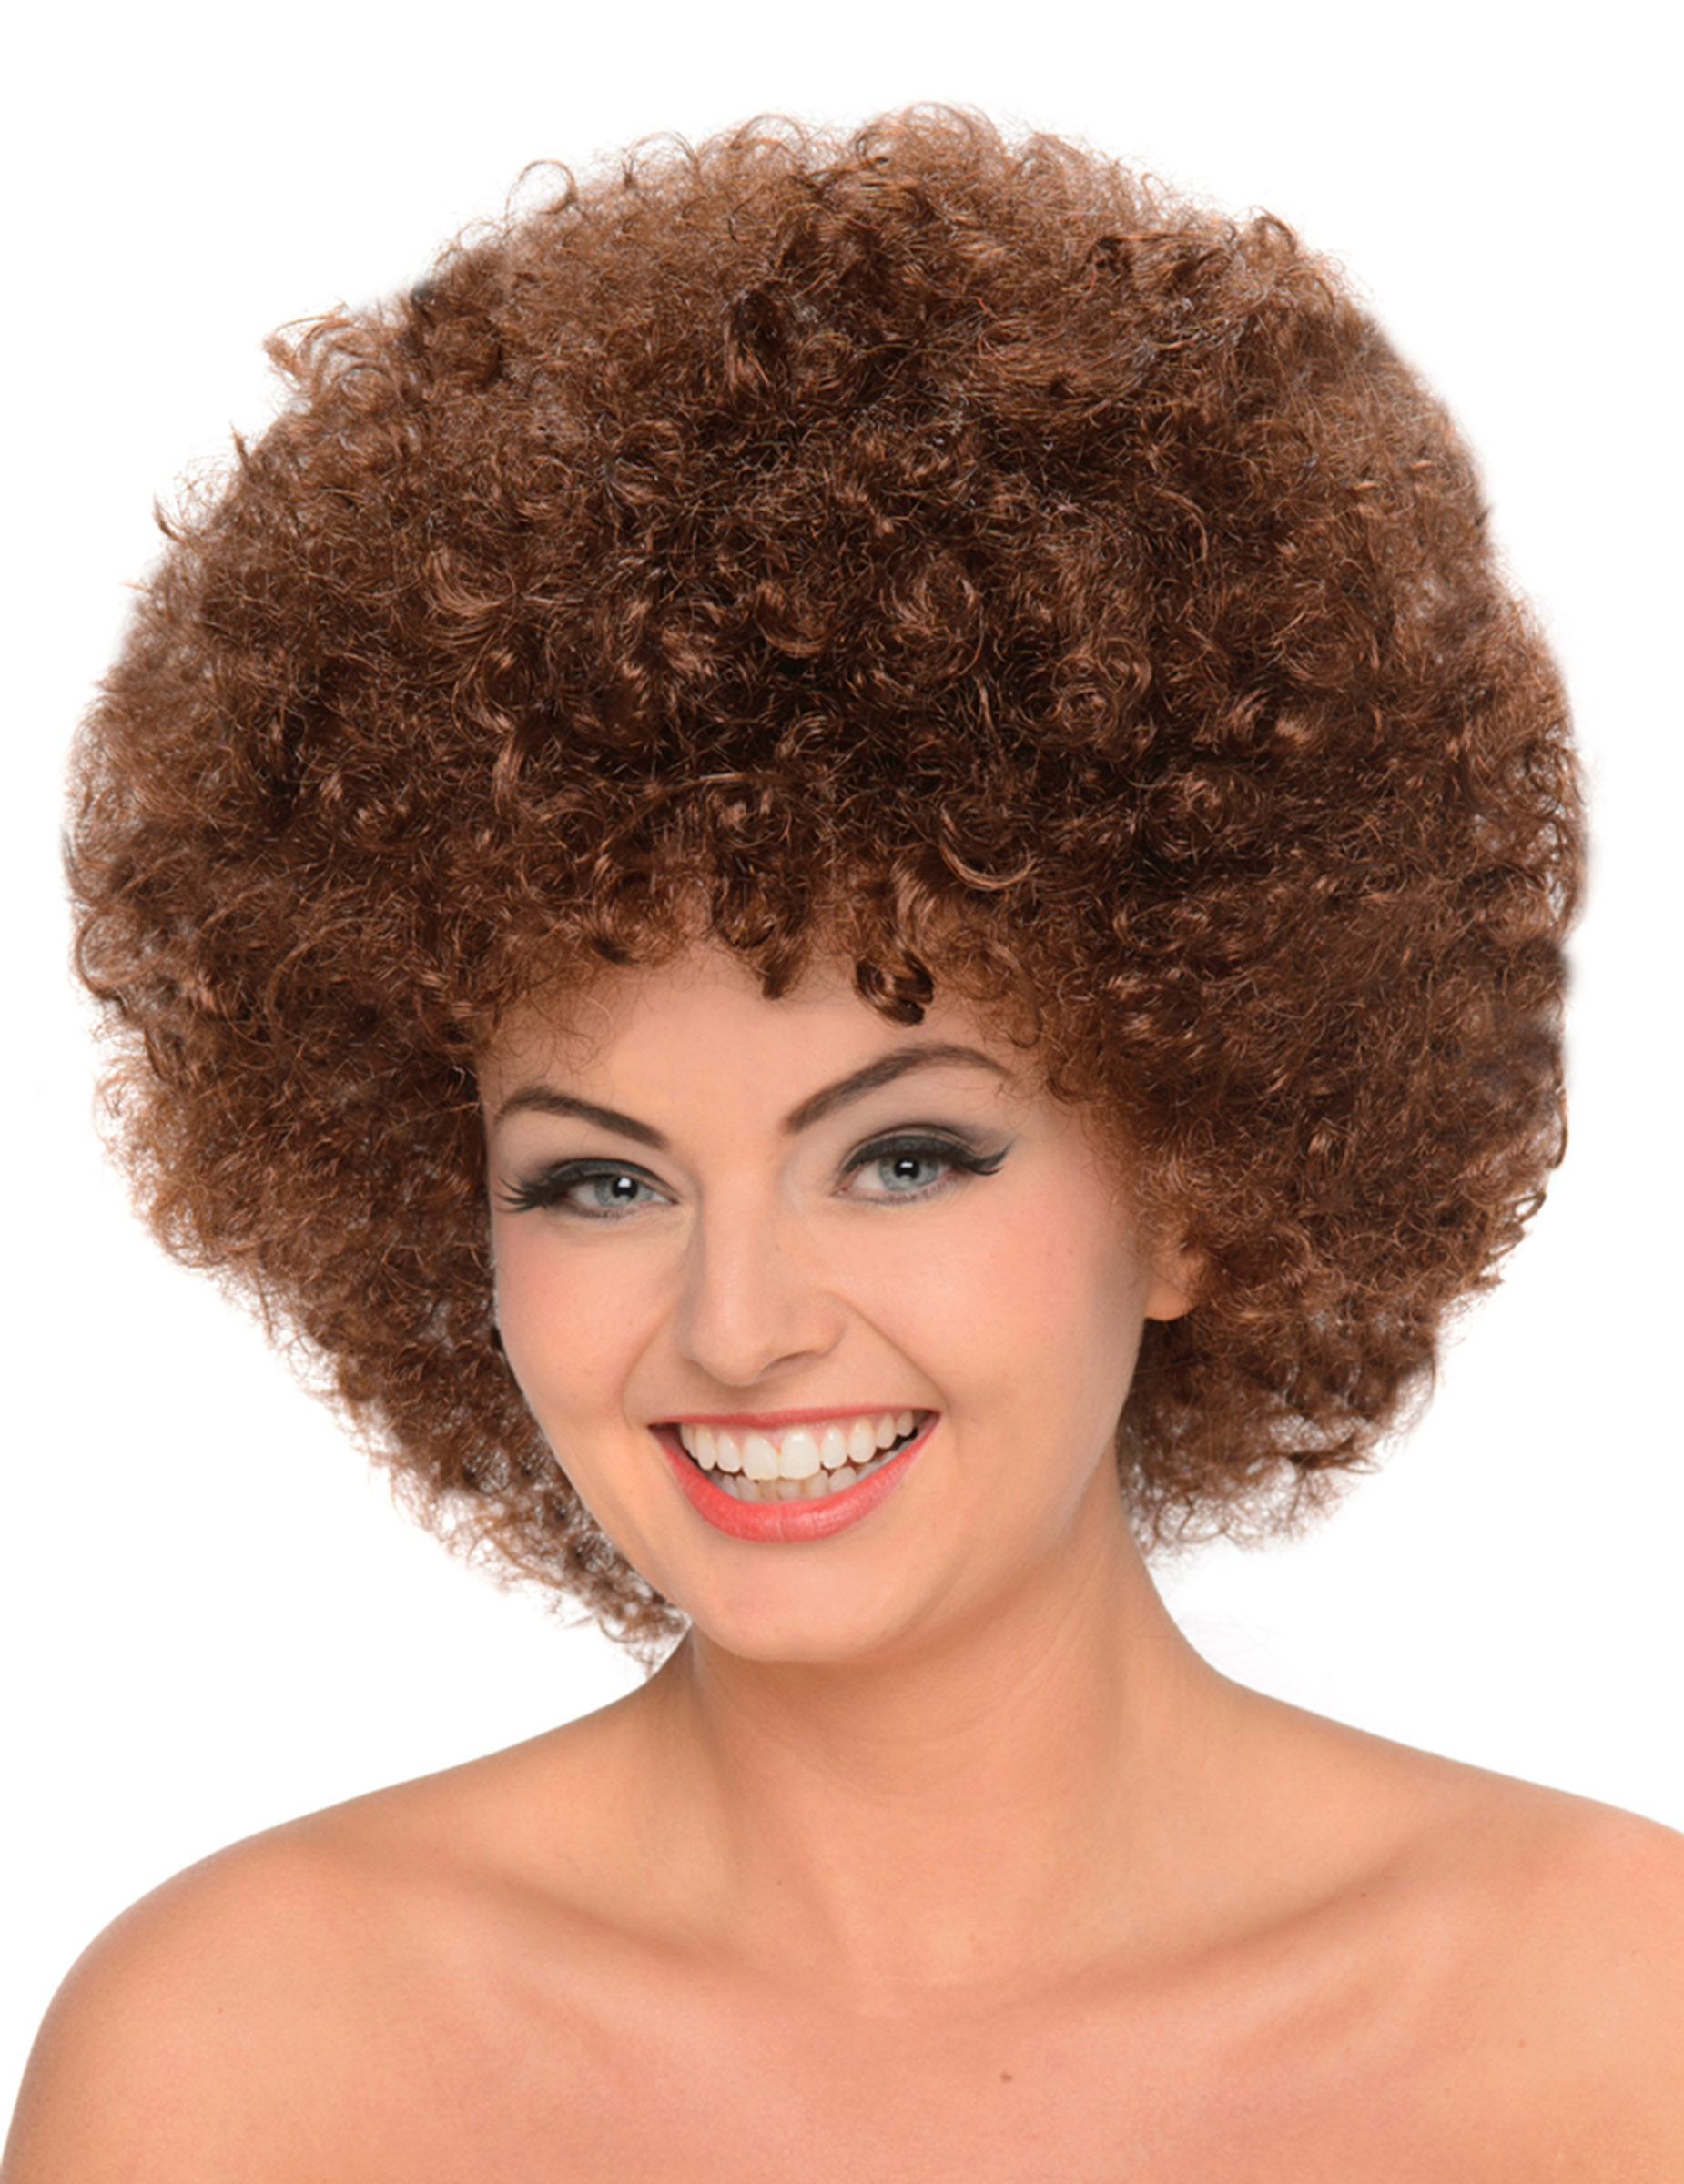 Perruque afro chatain femme : Deguise-toi,